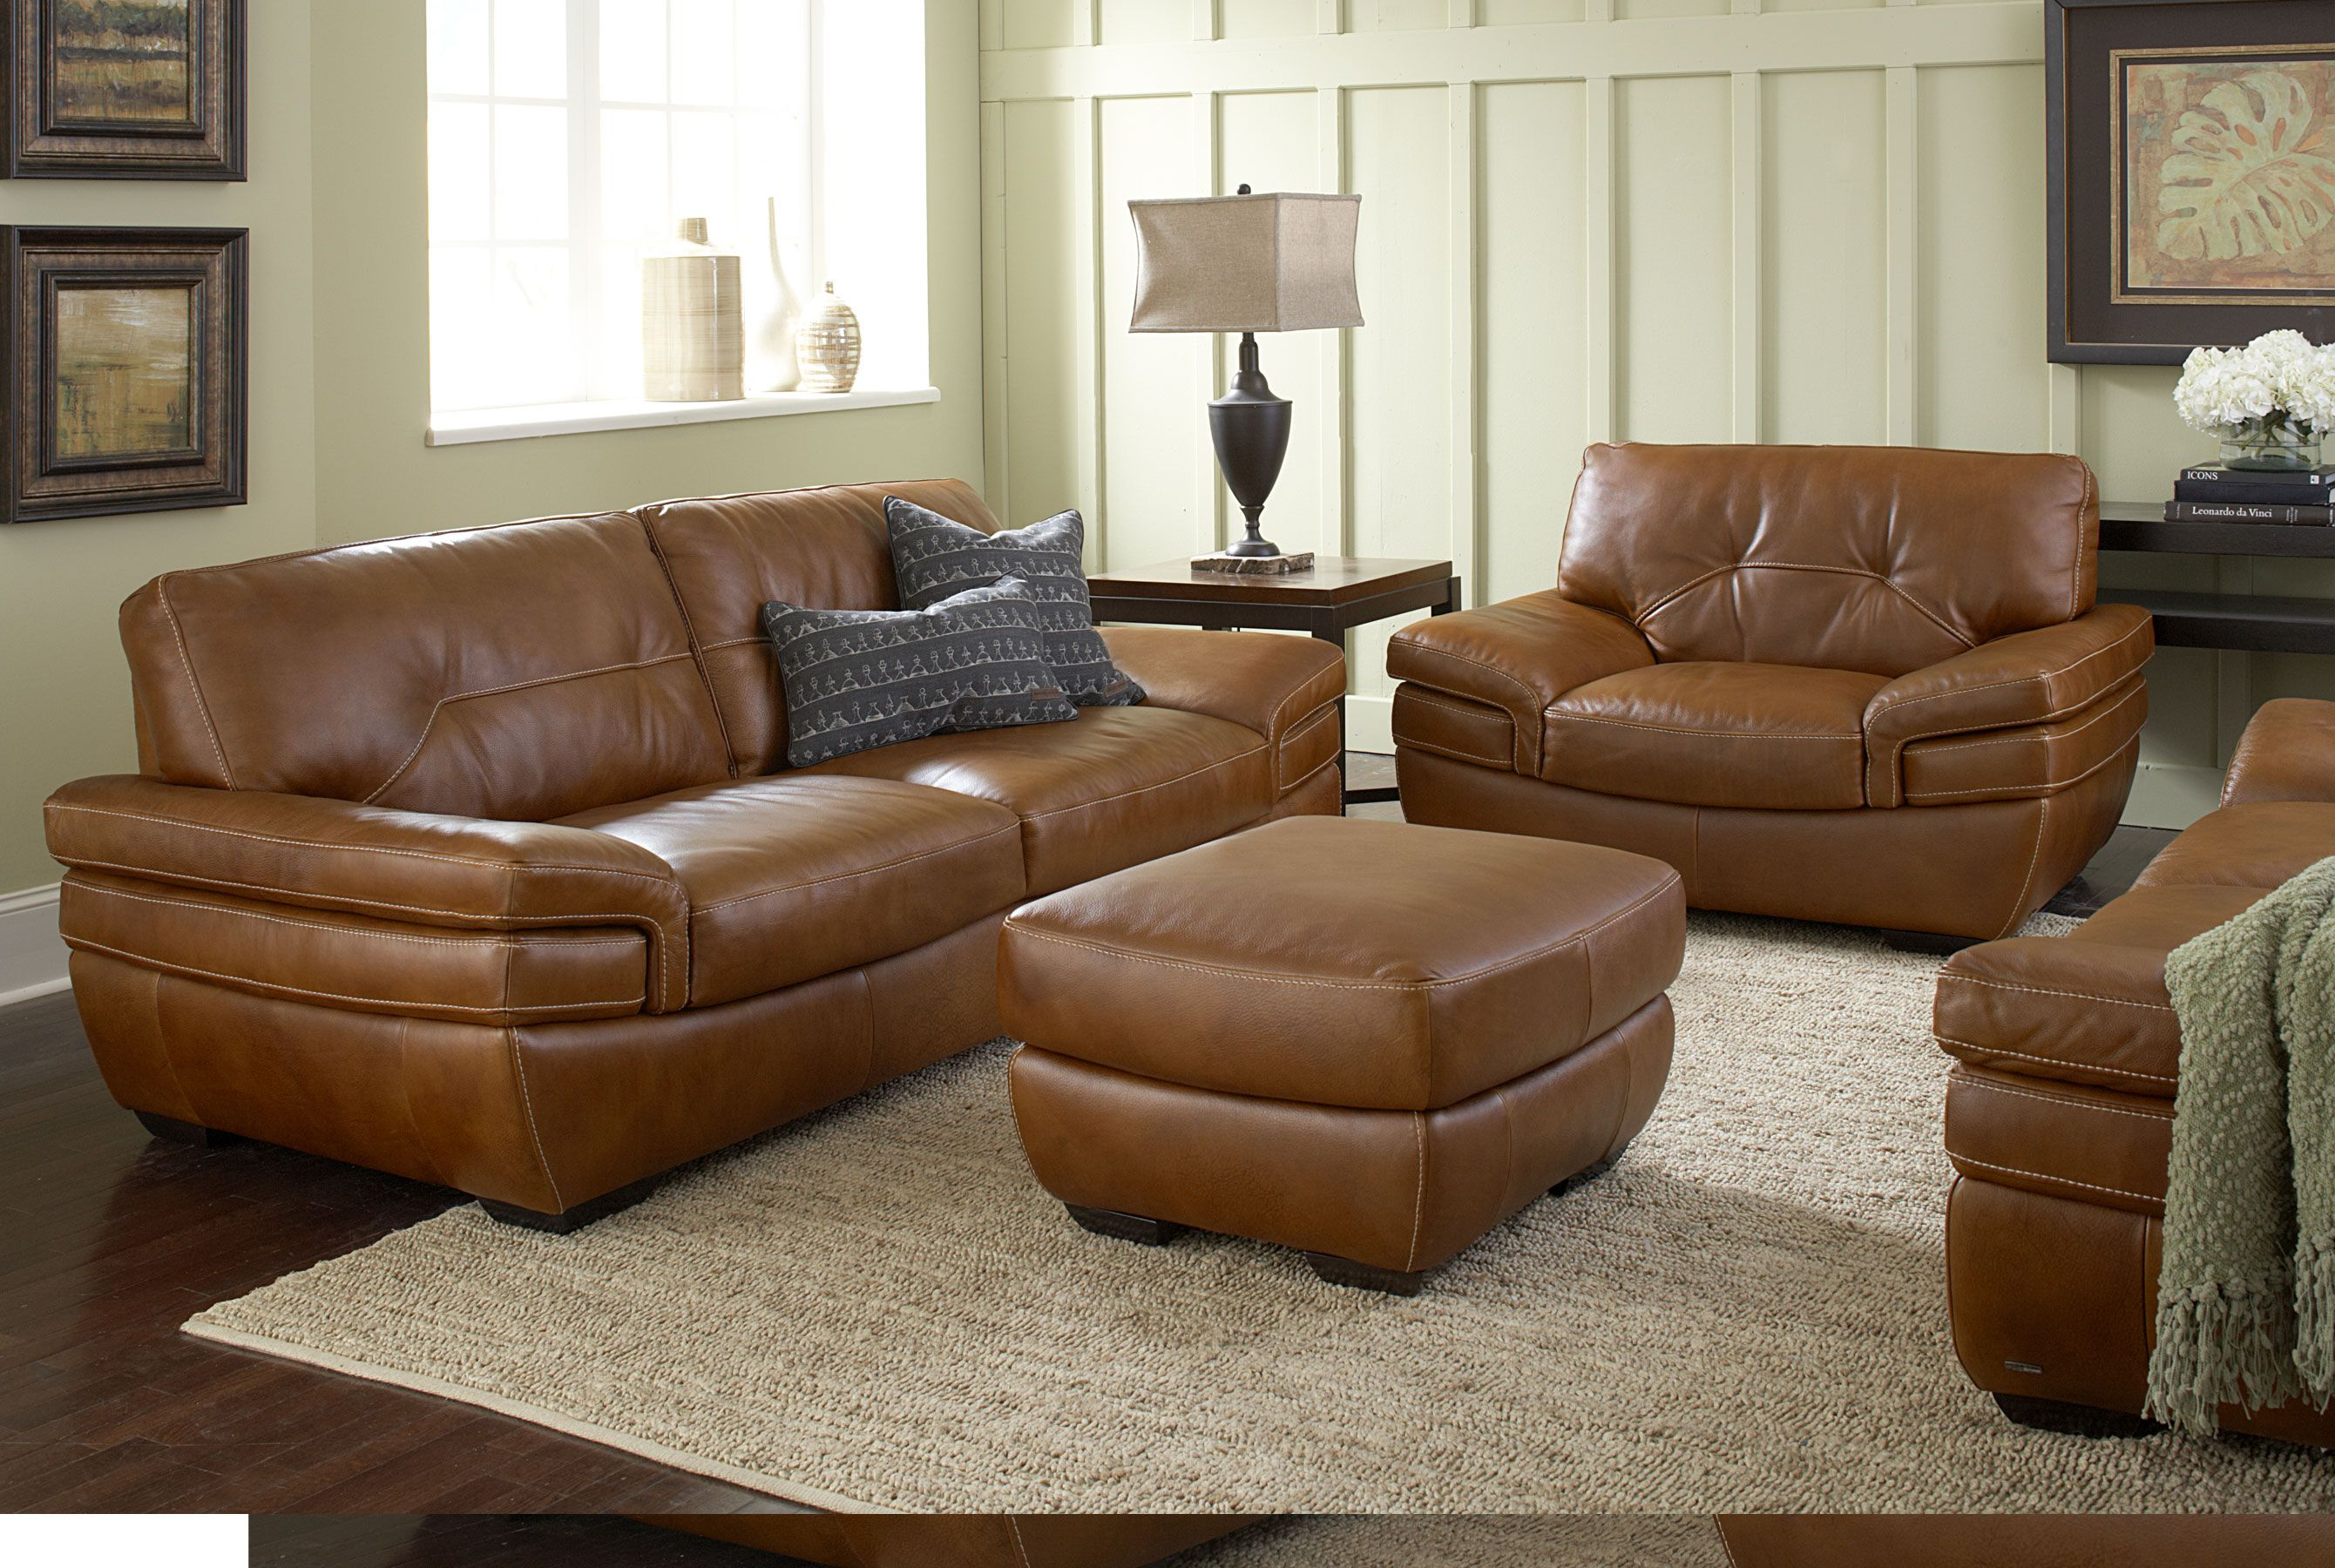 Biagio B806 100 Top Grain Leather Sofas And Sectionals